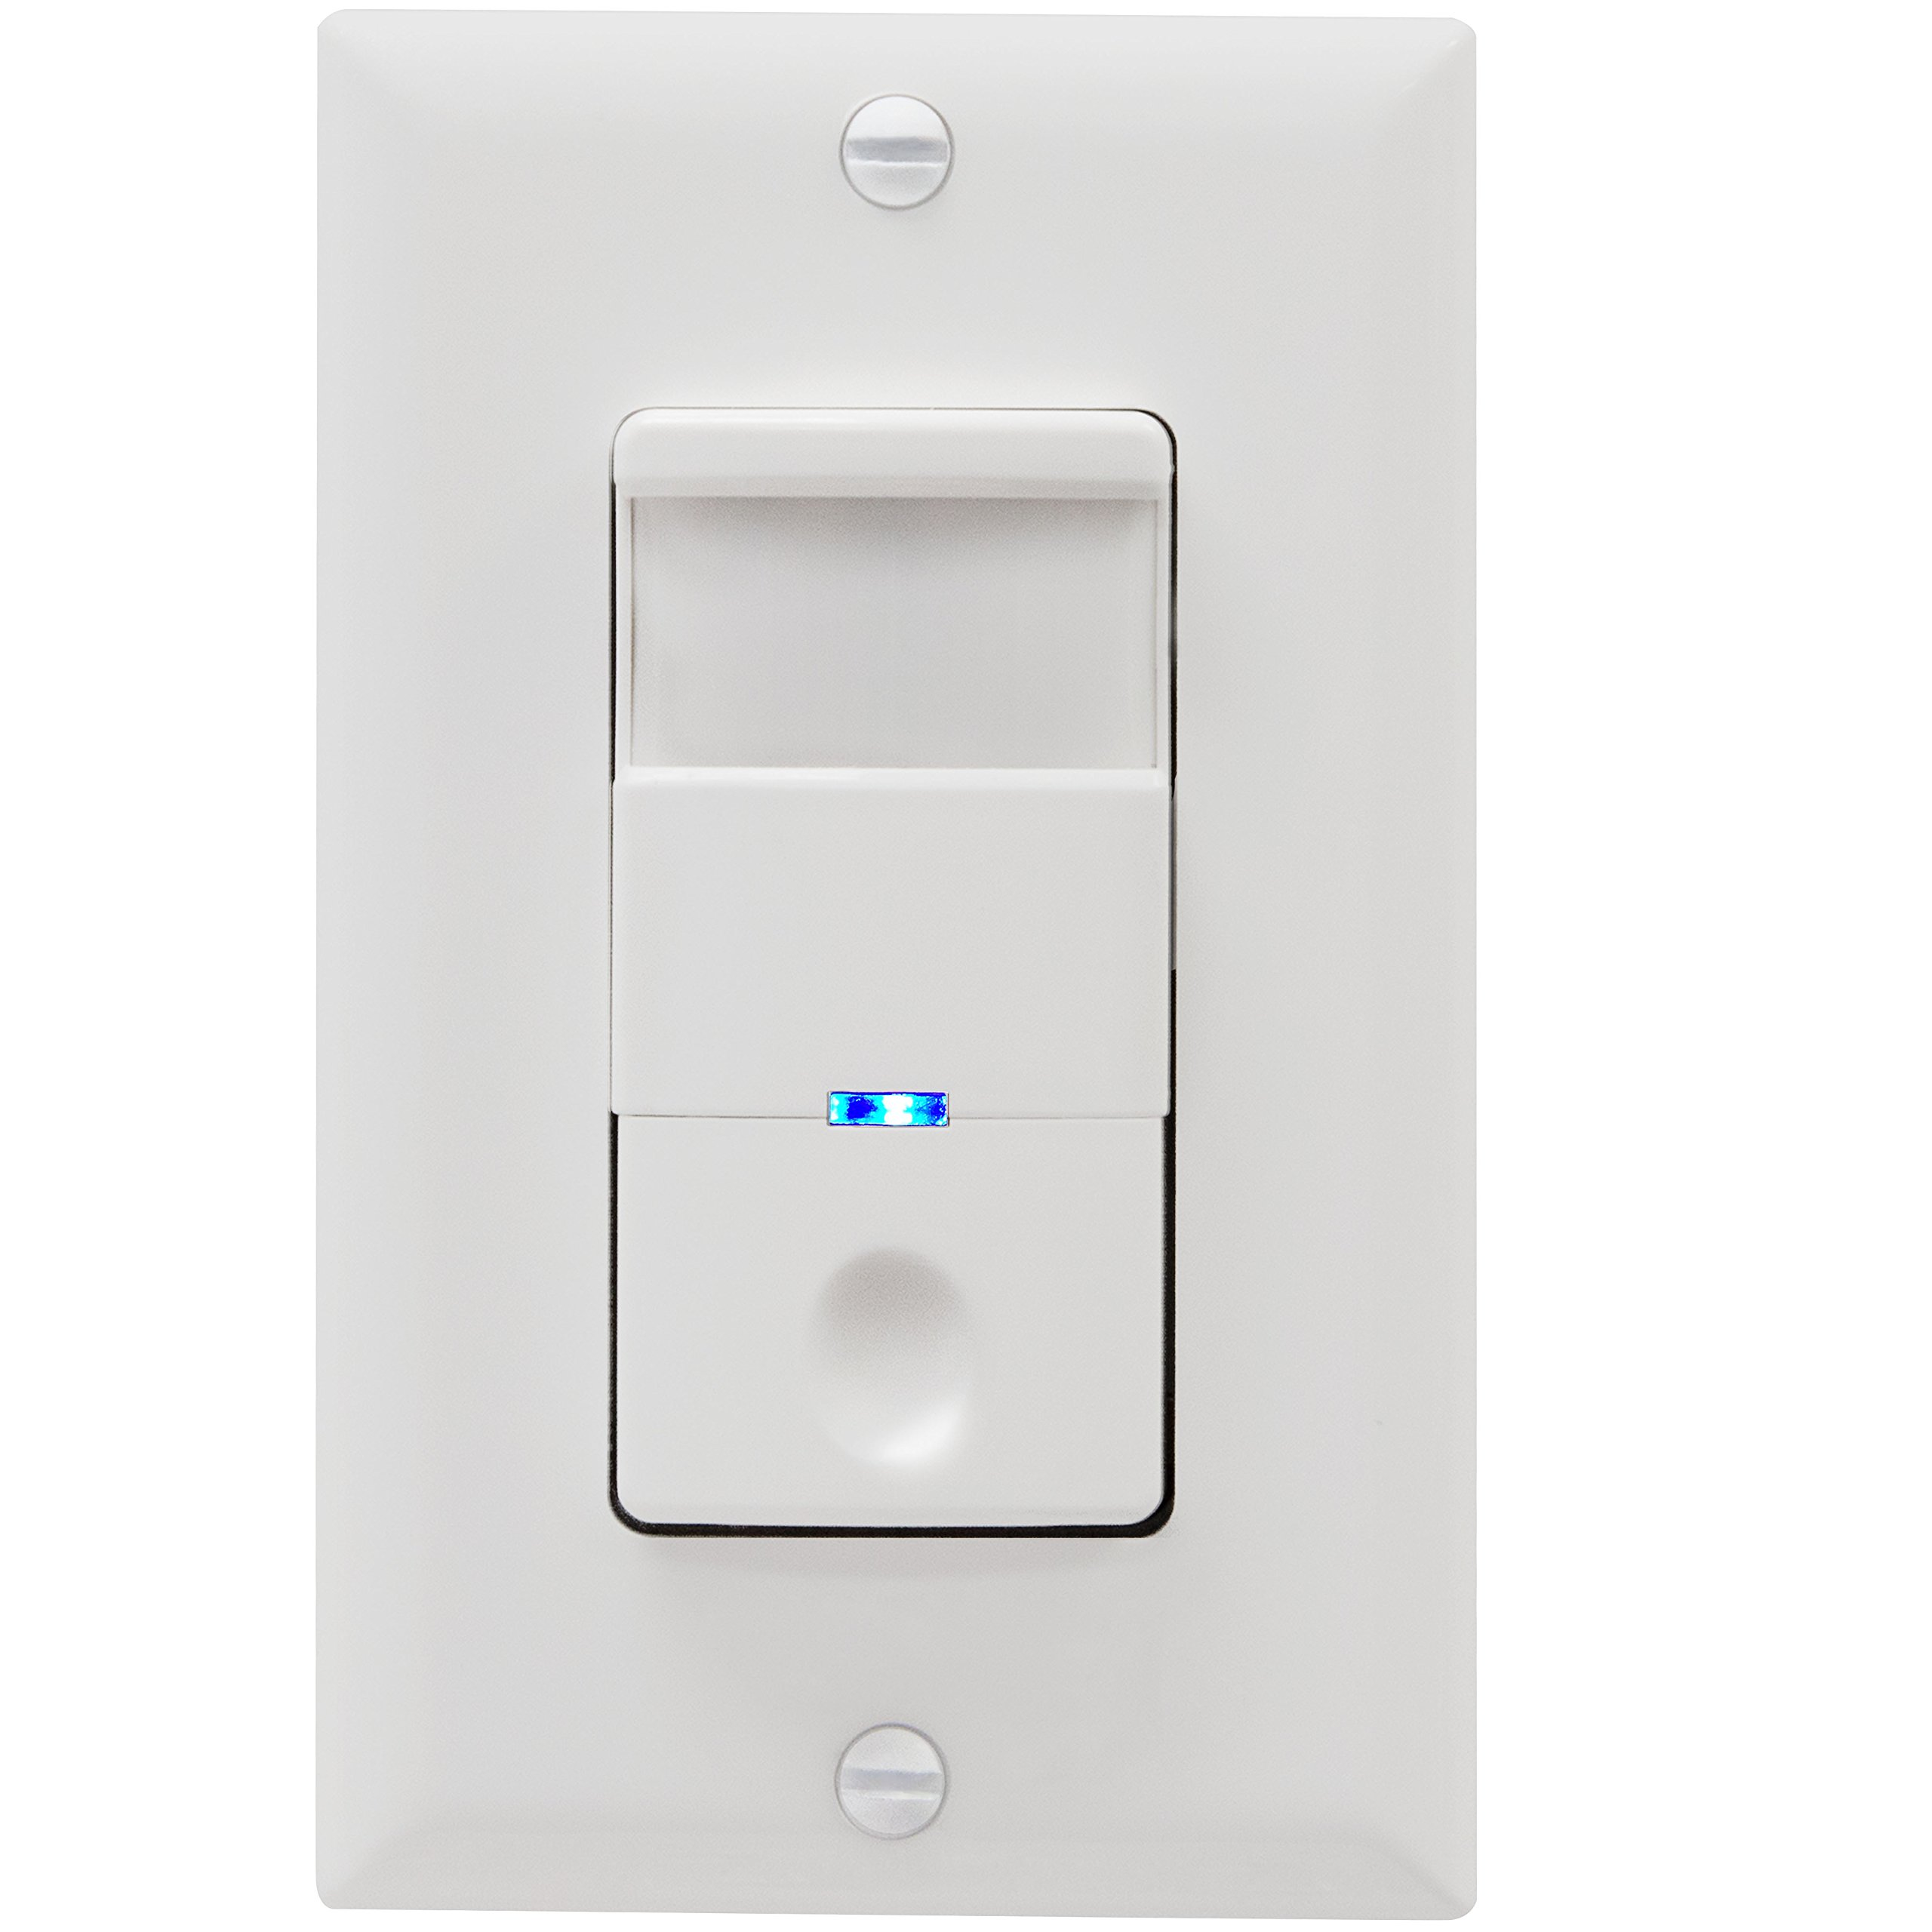 Best Rated In Motion Activated Wall Switches Helpful Customer Lighting Wiring Light Switch With Neutral Zwave Home Topgreener Tdos5 J W Sensor No Required Pir Passive Infrared